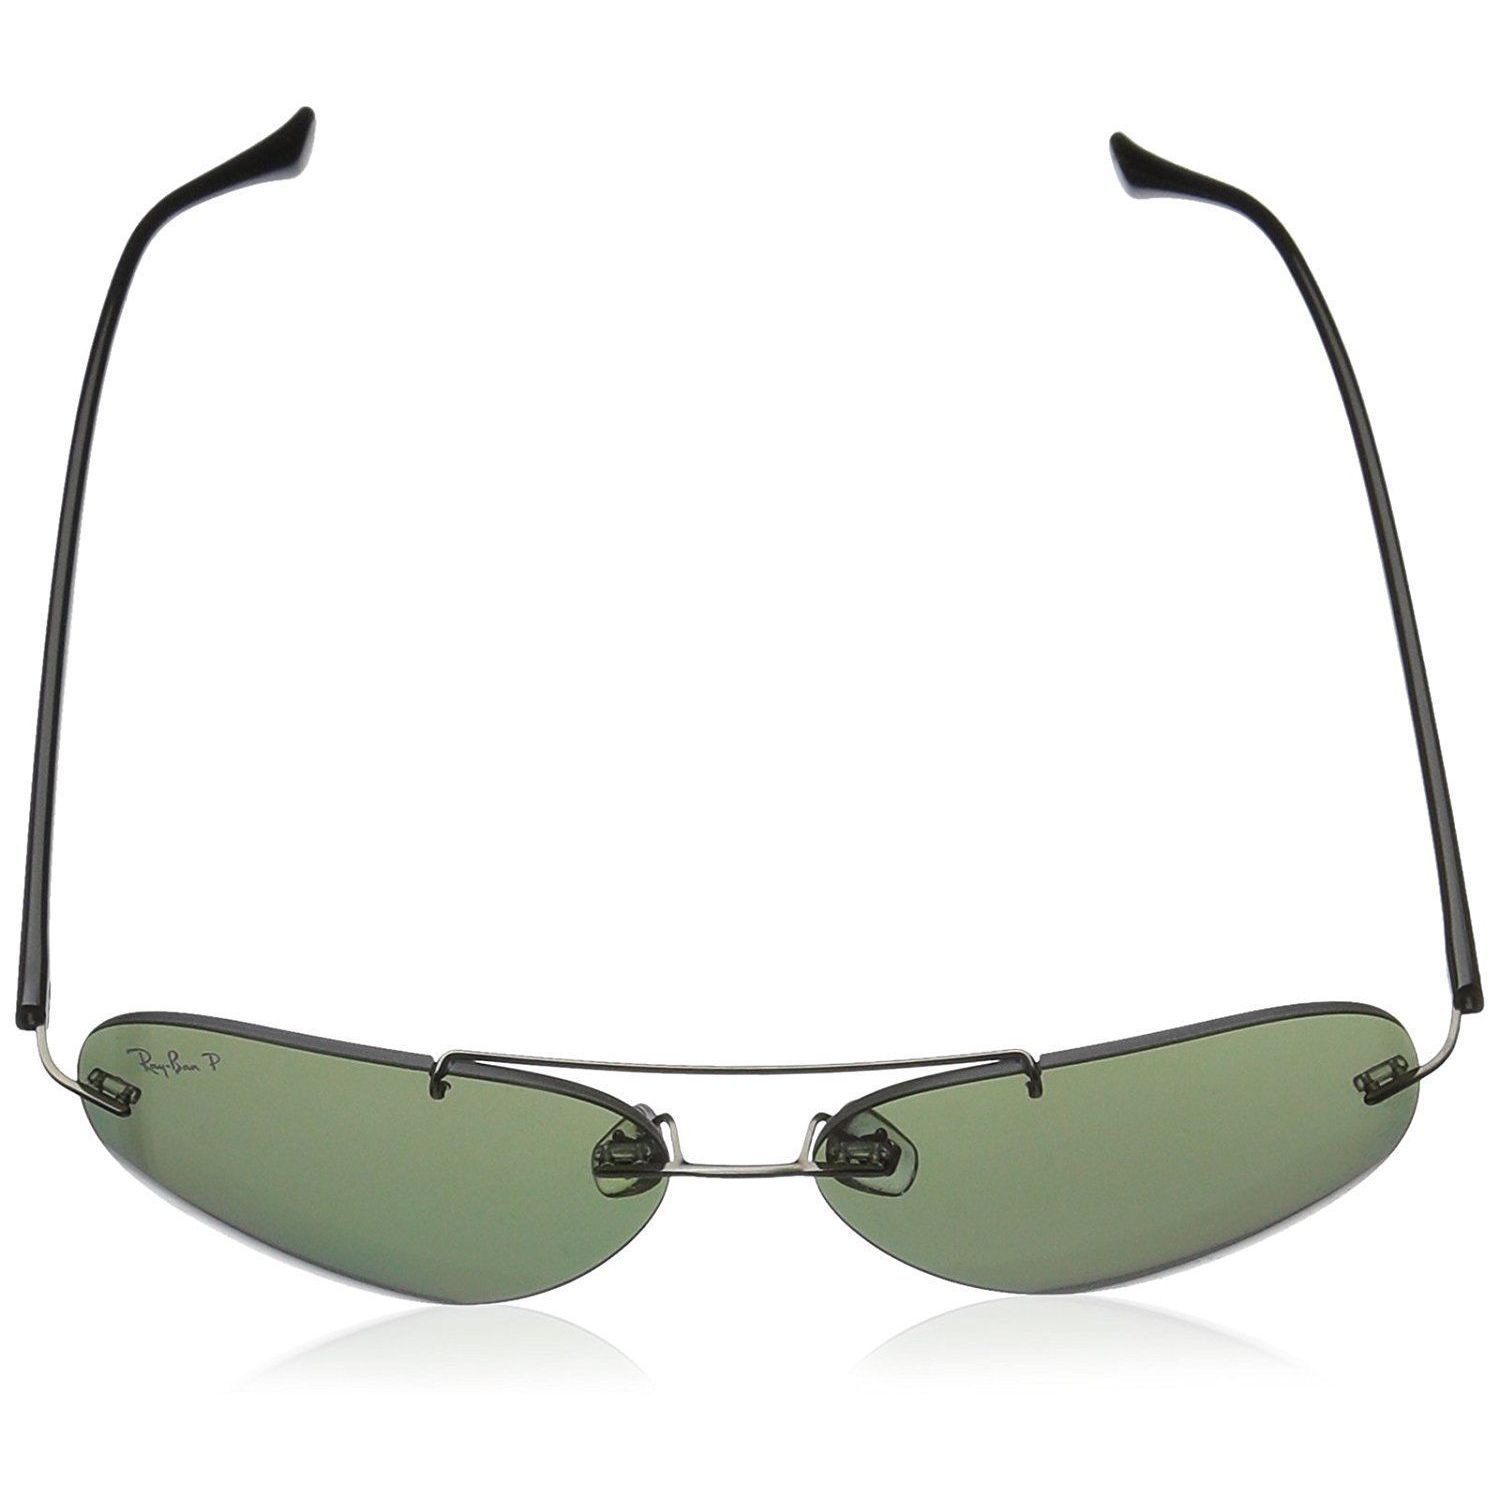 d30f1c3ceec Shop Ray-Ban RB8058 004 9A Men s Rimless Rimless Polarized Green Lens  Sunglasses - Free Shipping Today - Overstock - 15287145